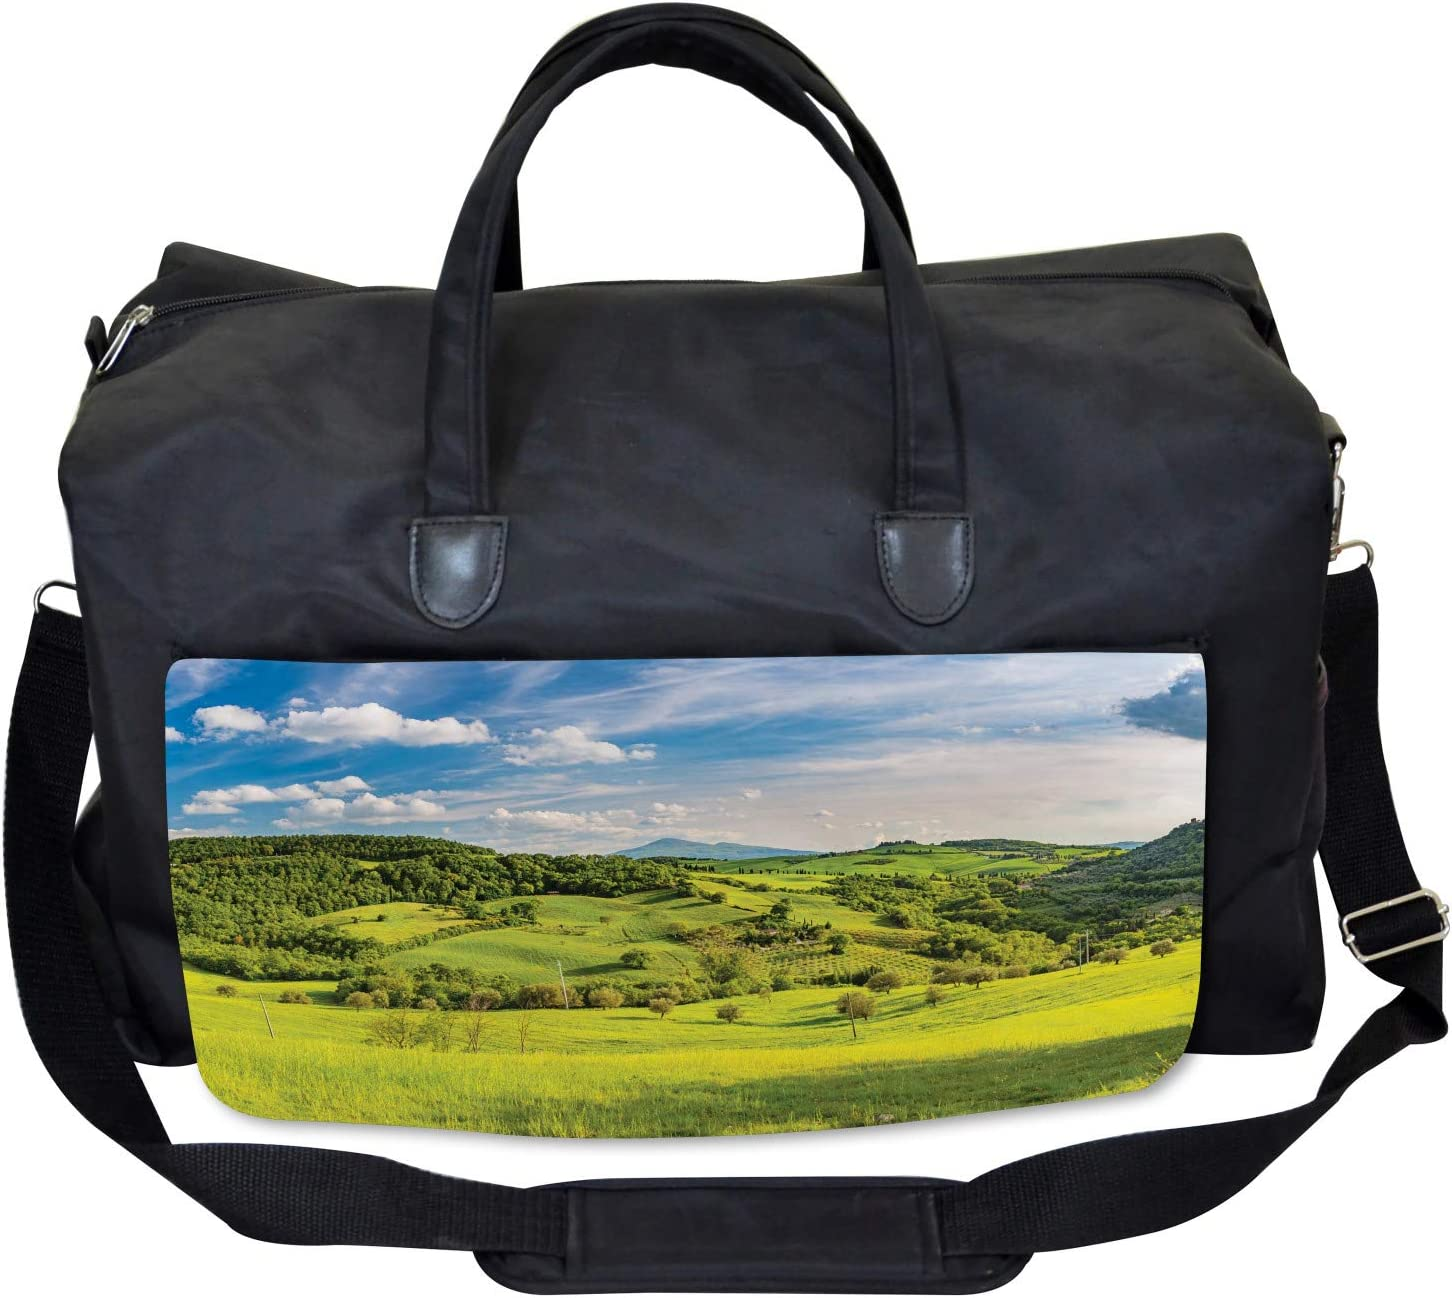 Large Weekender Carry-on Ambesonne Landscape Gym Bag Tuscany Italy Farms